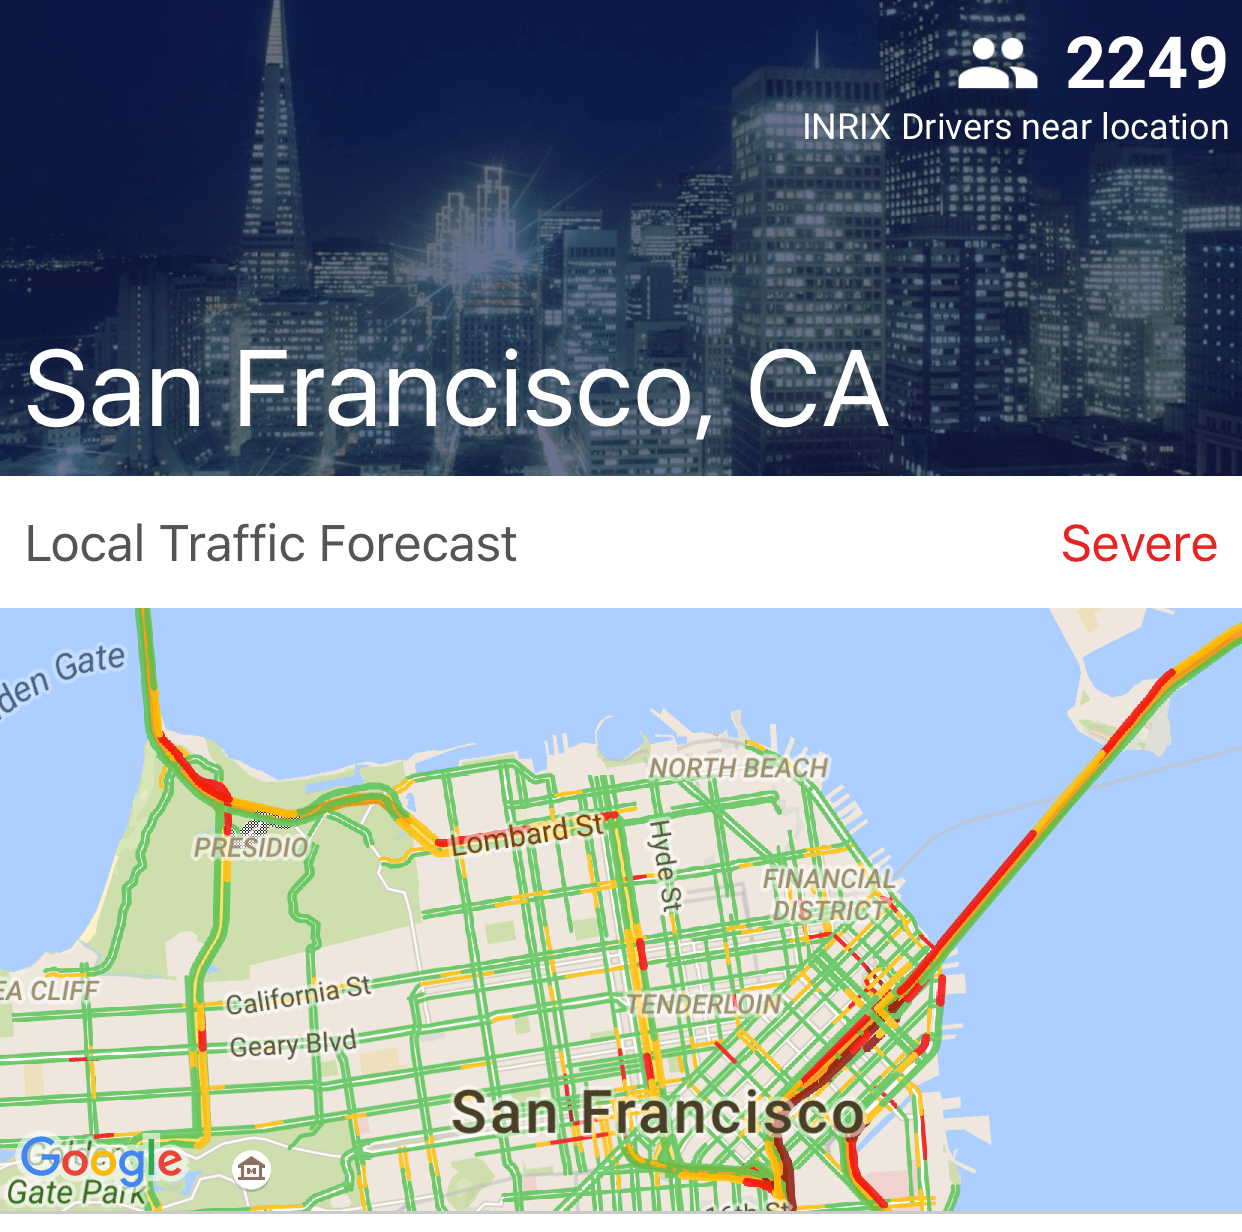 New INRIX Traffic Mobile App first to learn driving habits